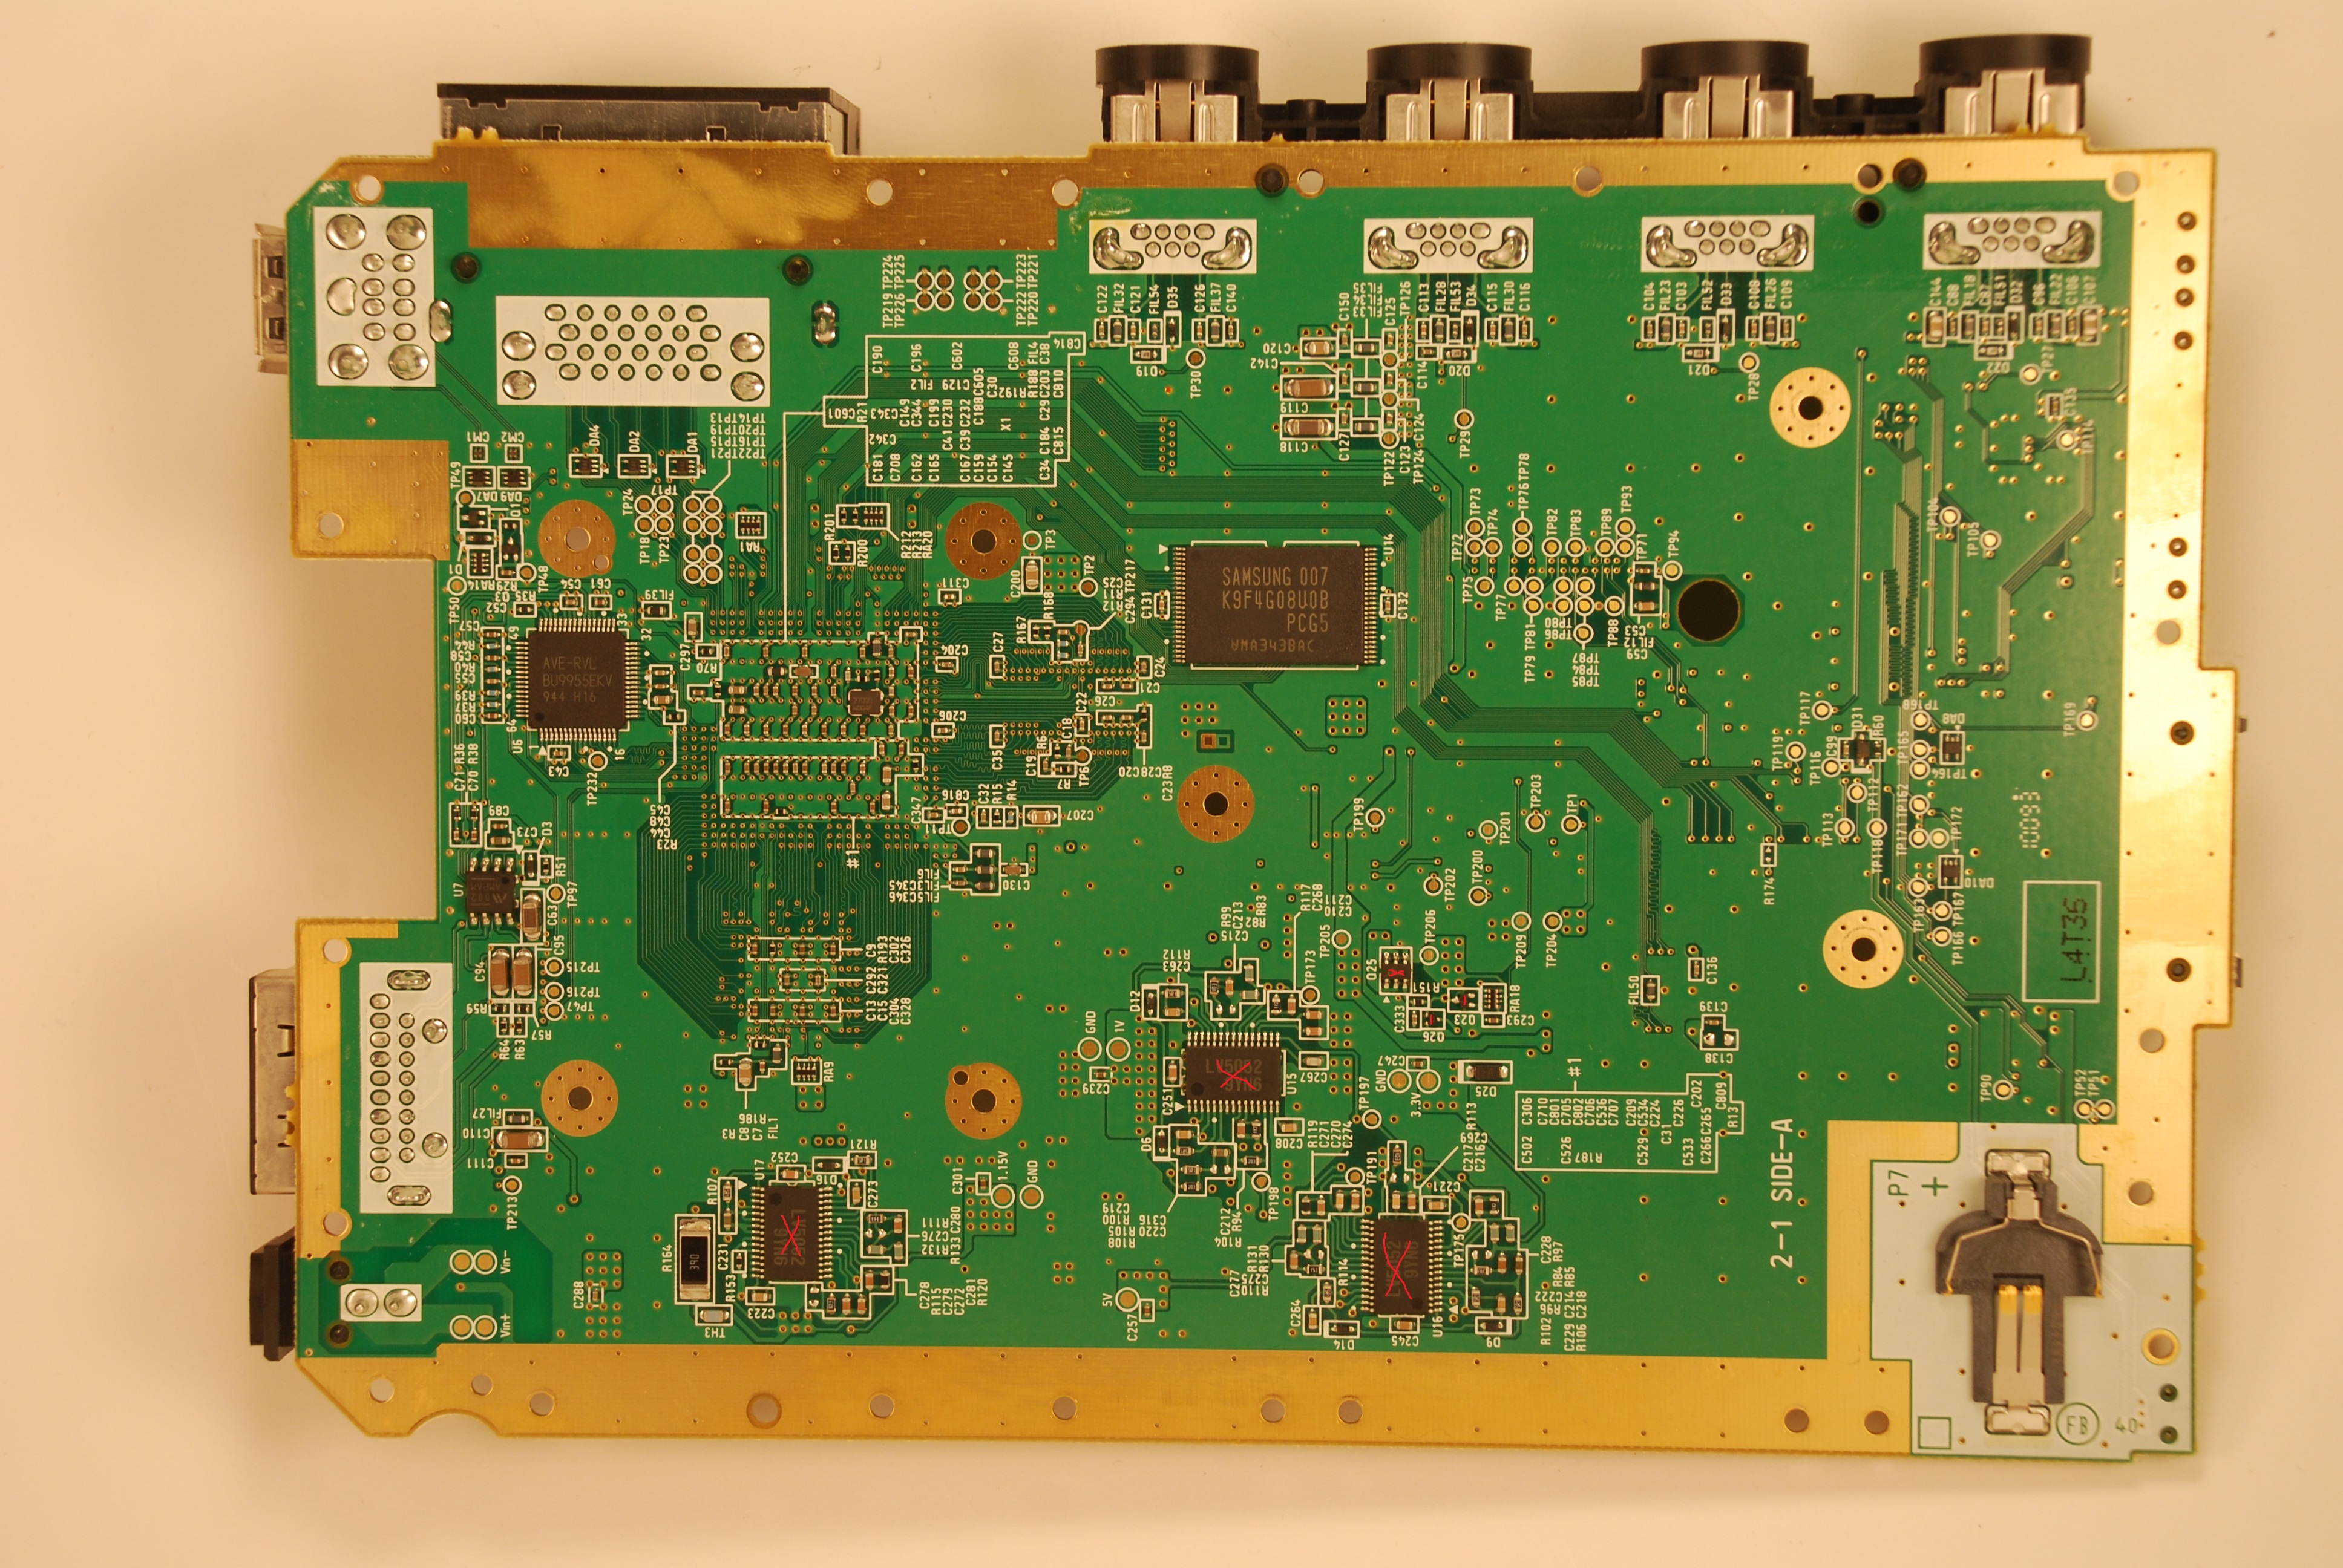 Wii rp 40 bottom with components removed.jpg